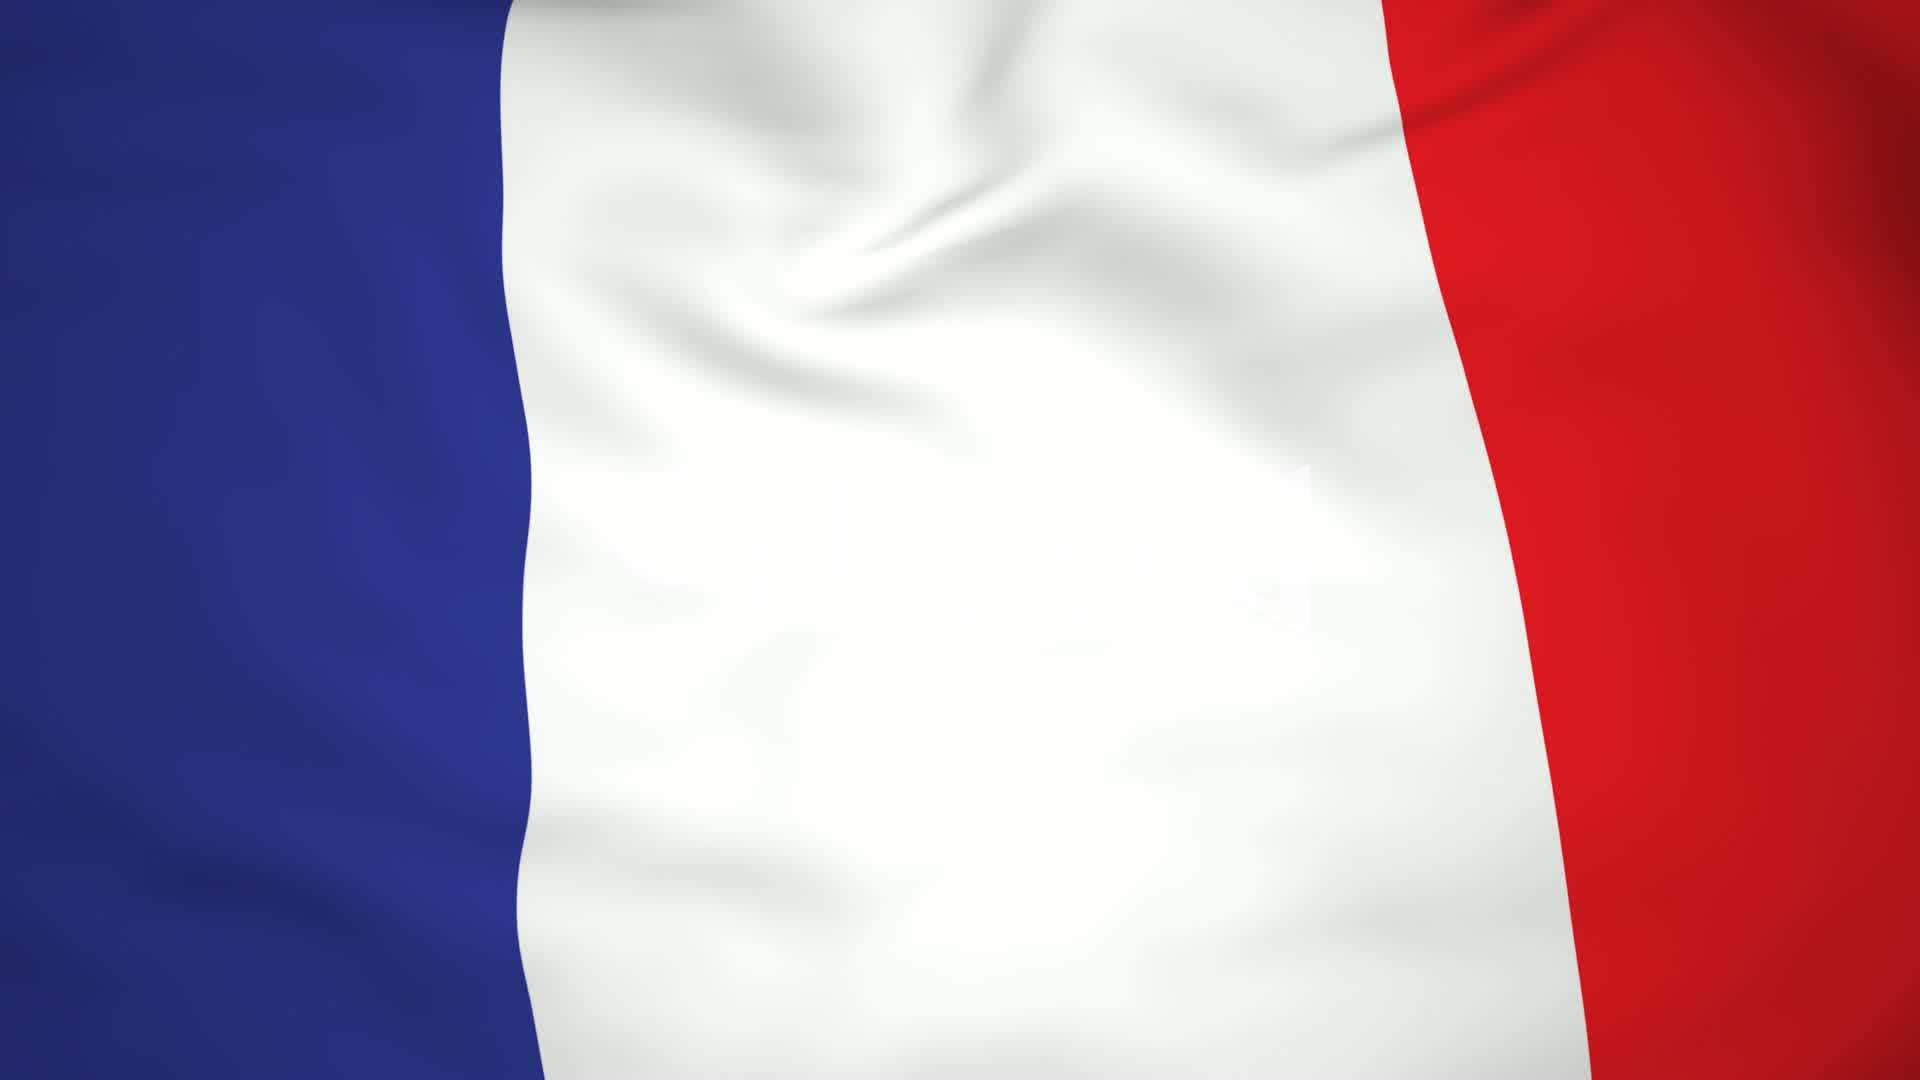 The Background Of Flag France Video Royalty Free And Stock Footage